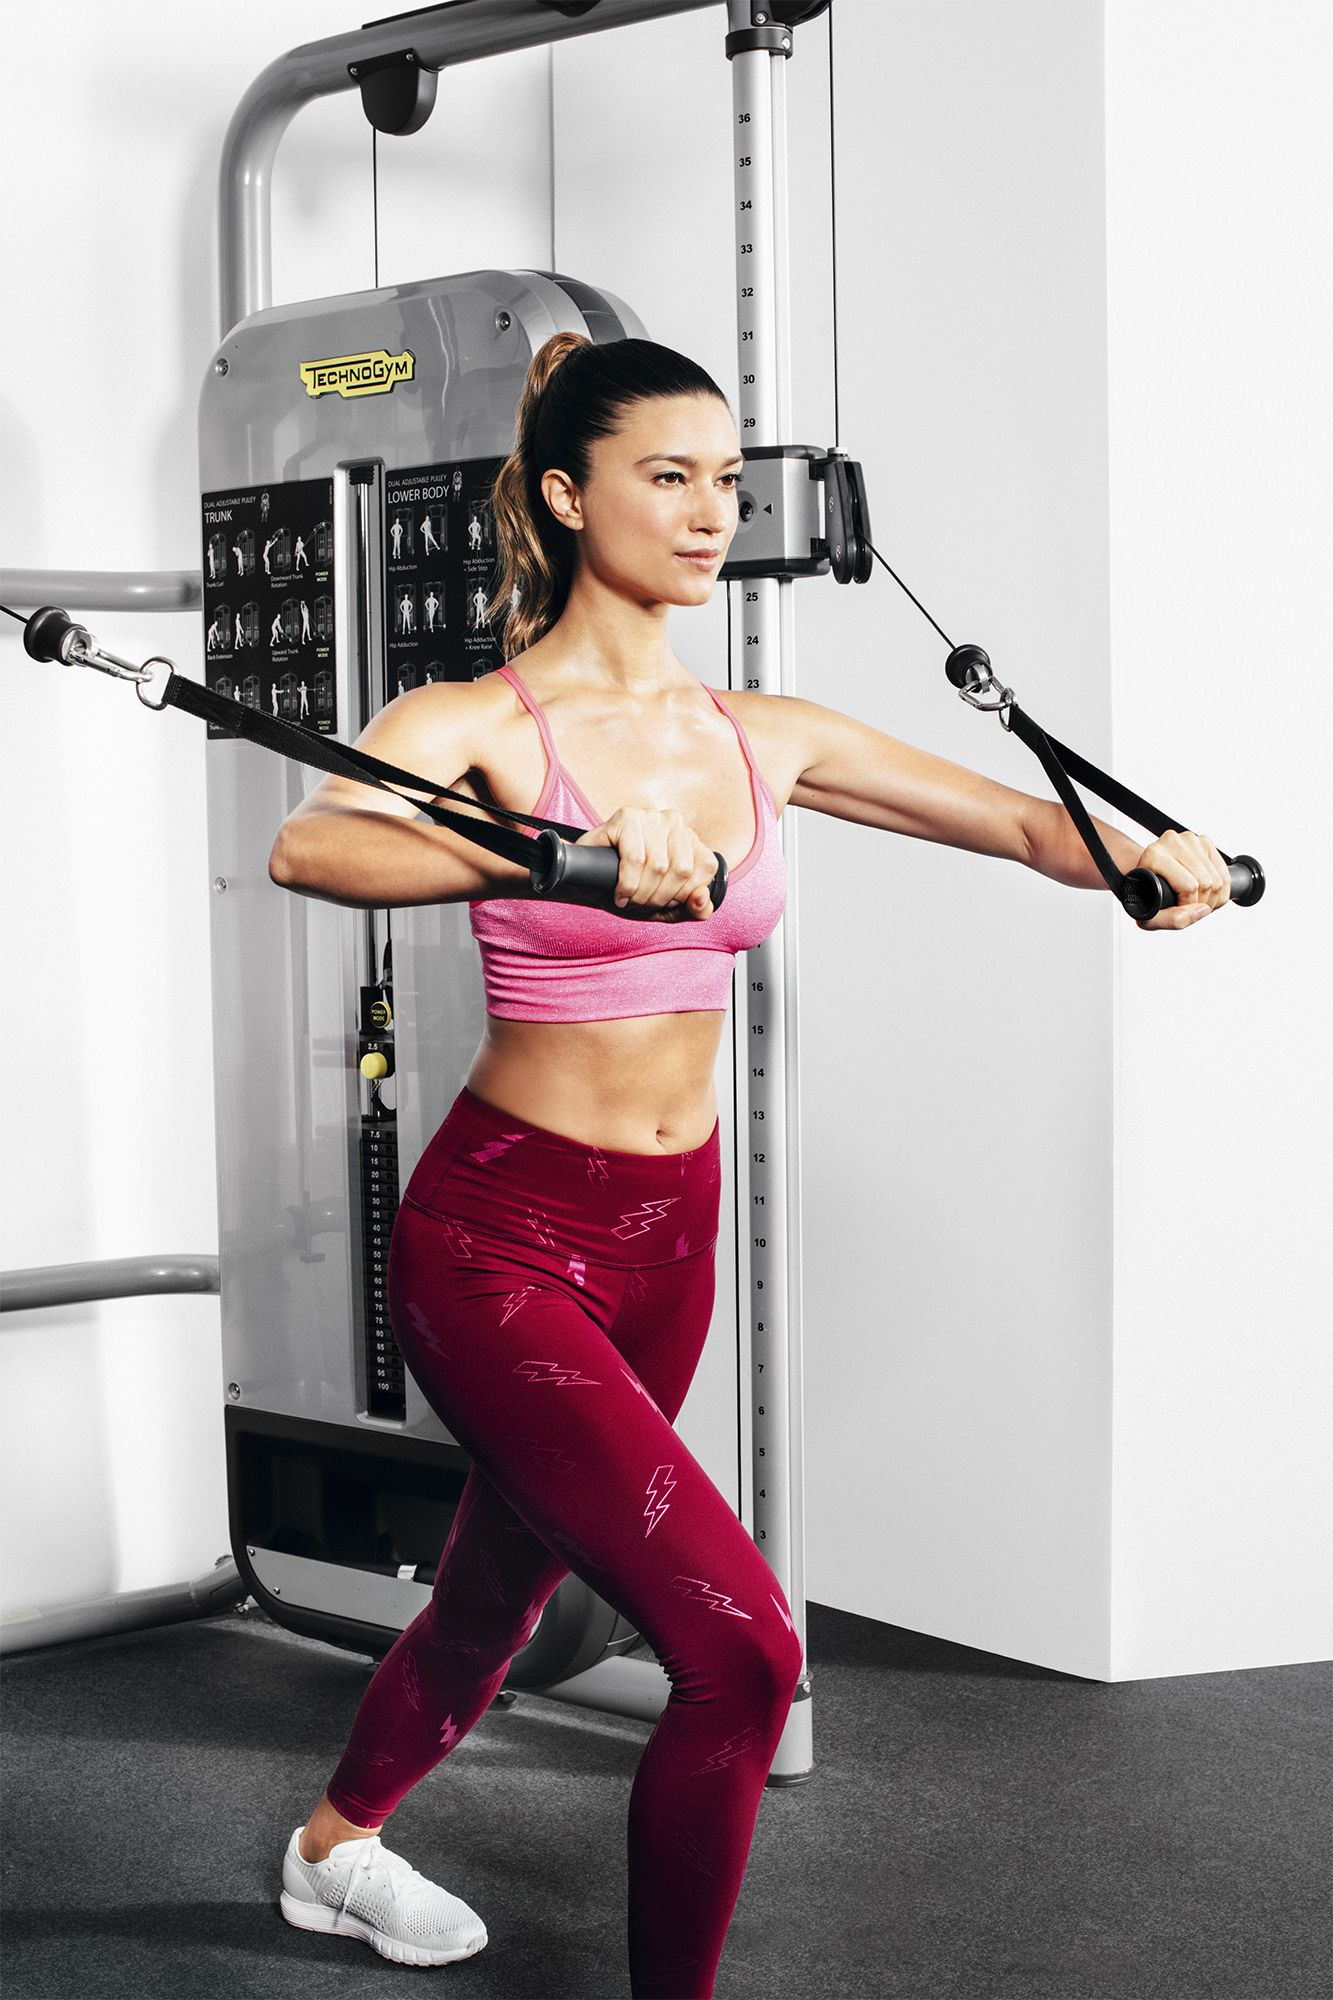 This 3-Move Cable Machine Workout Will Tone You All Over